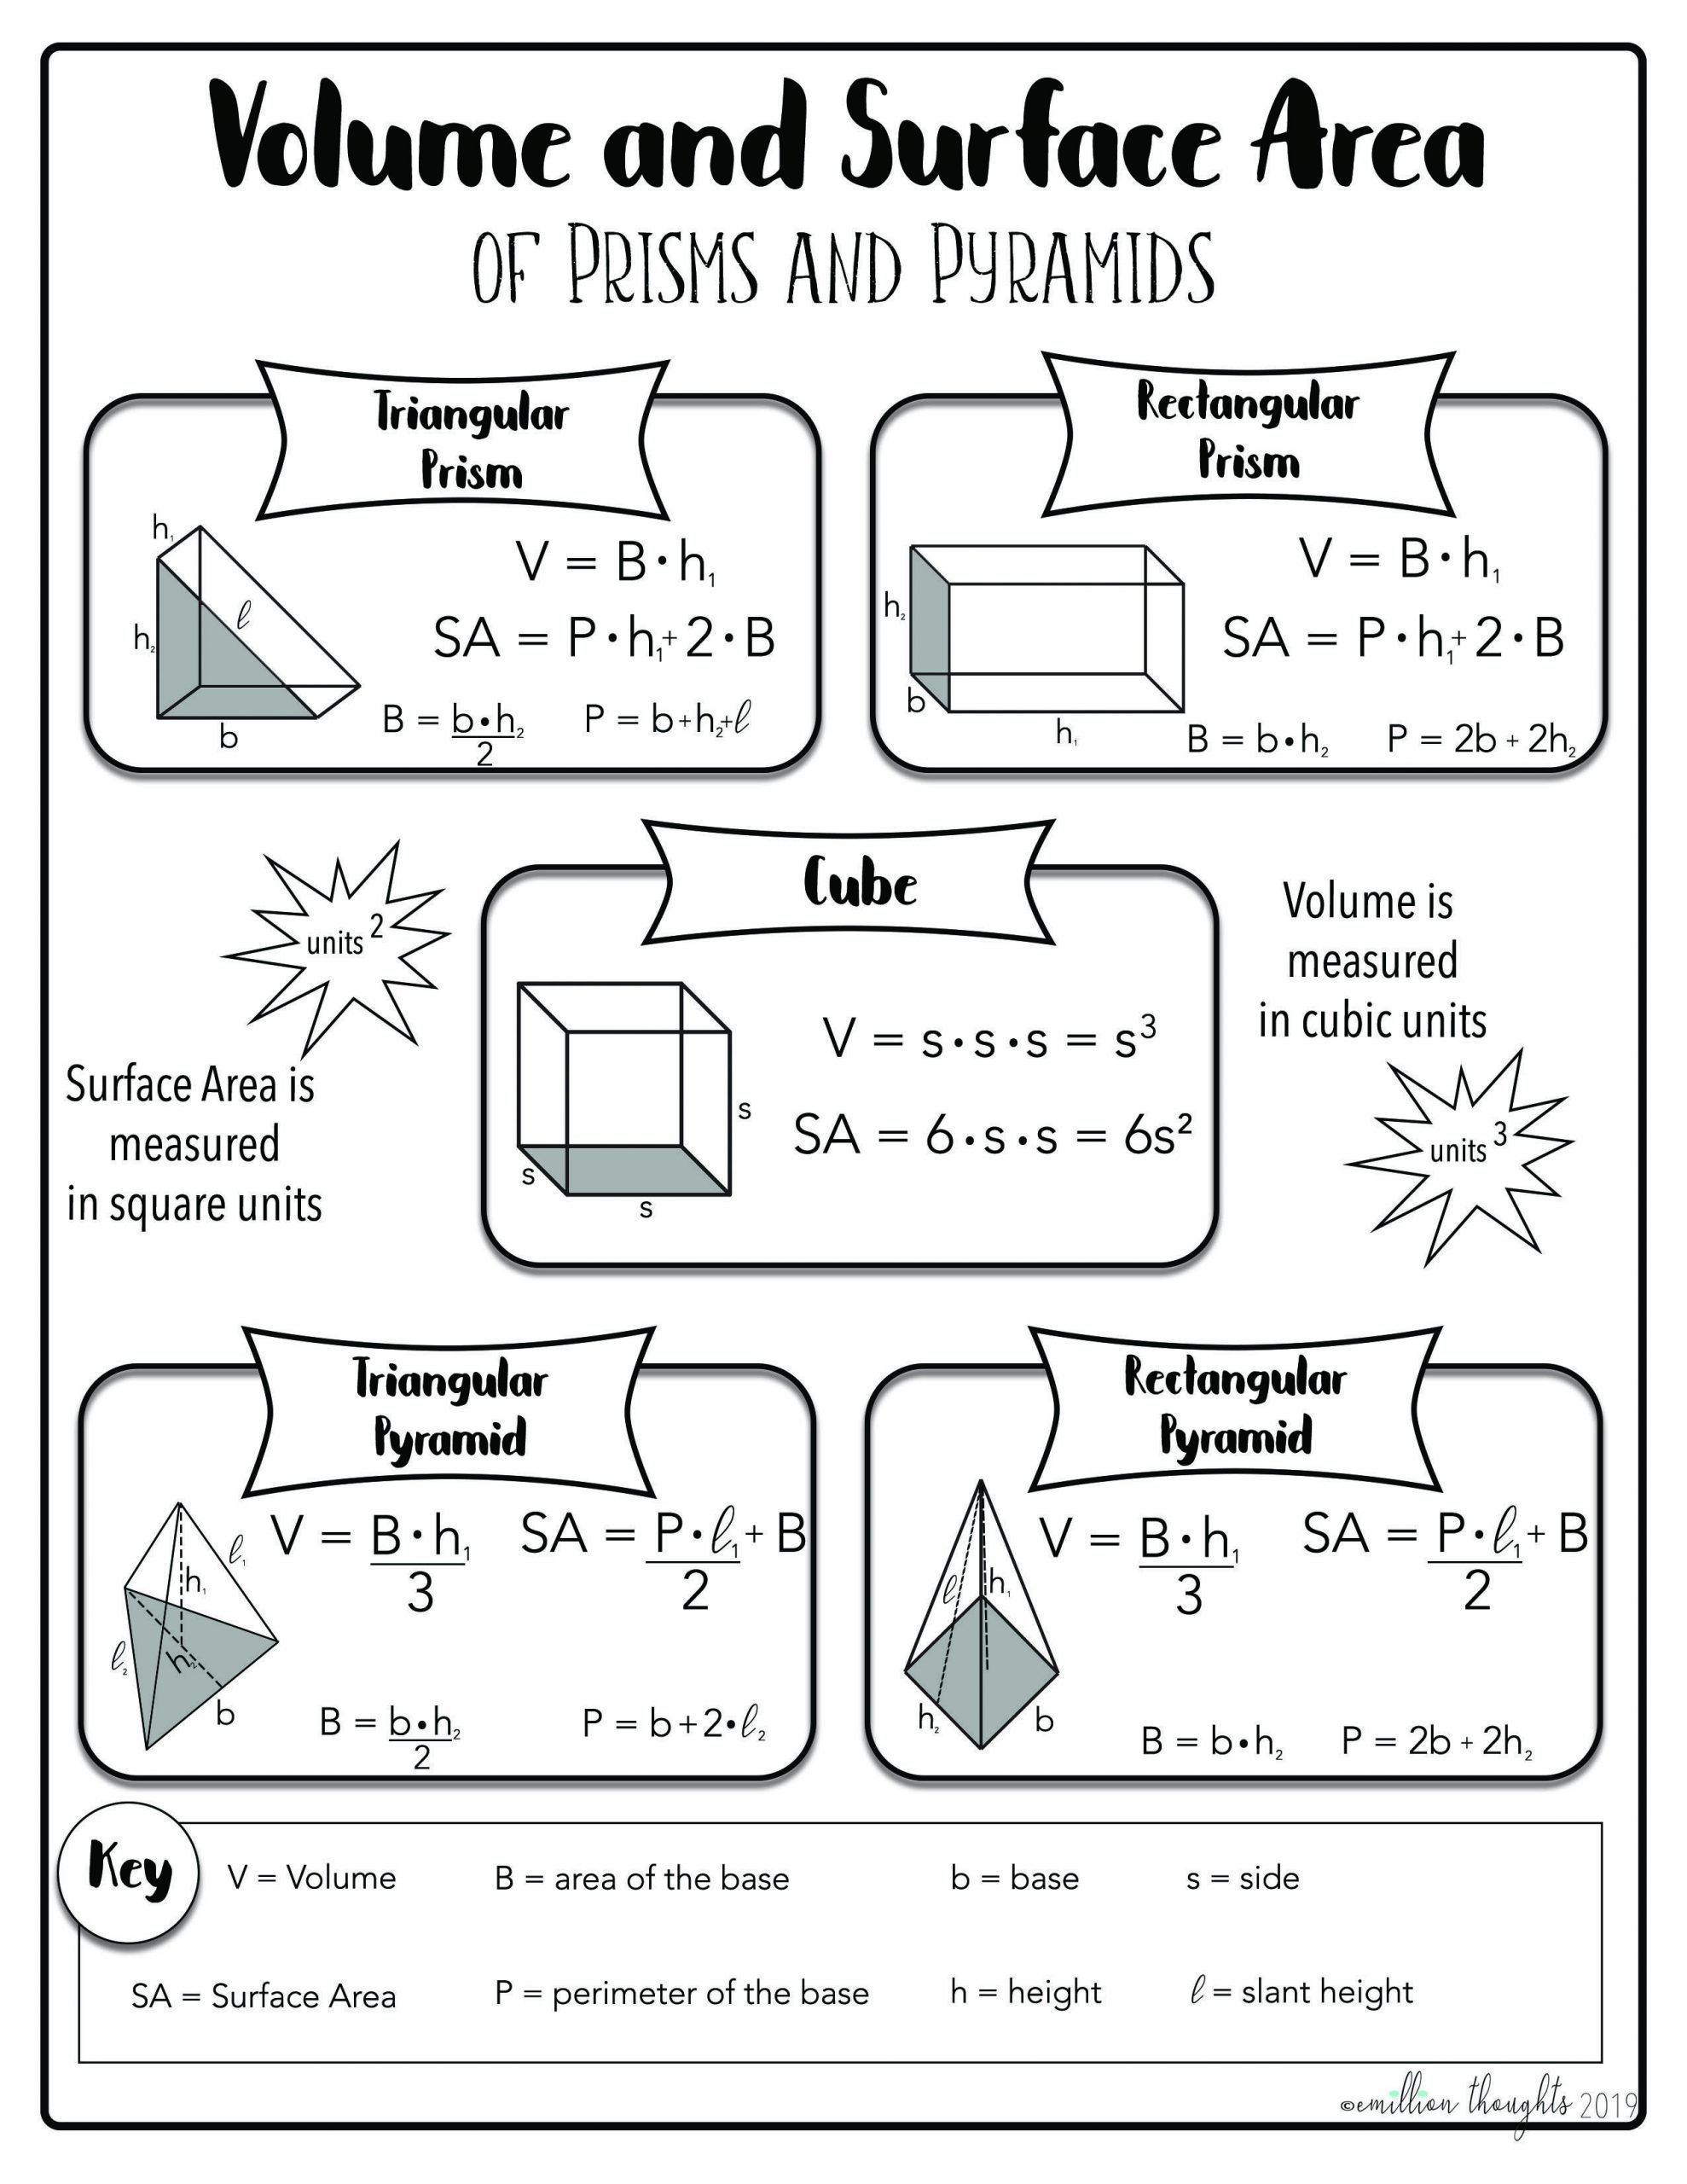 Worksheet Works Calculating Volume Volume and Surface area Of Prisms and Pyramids Reference